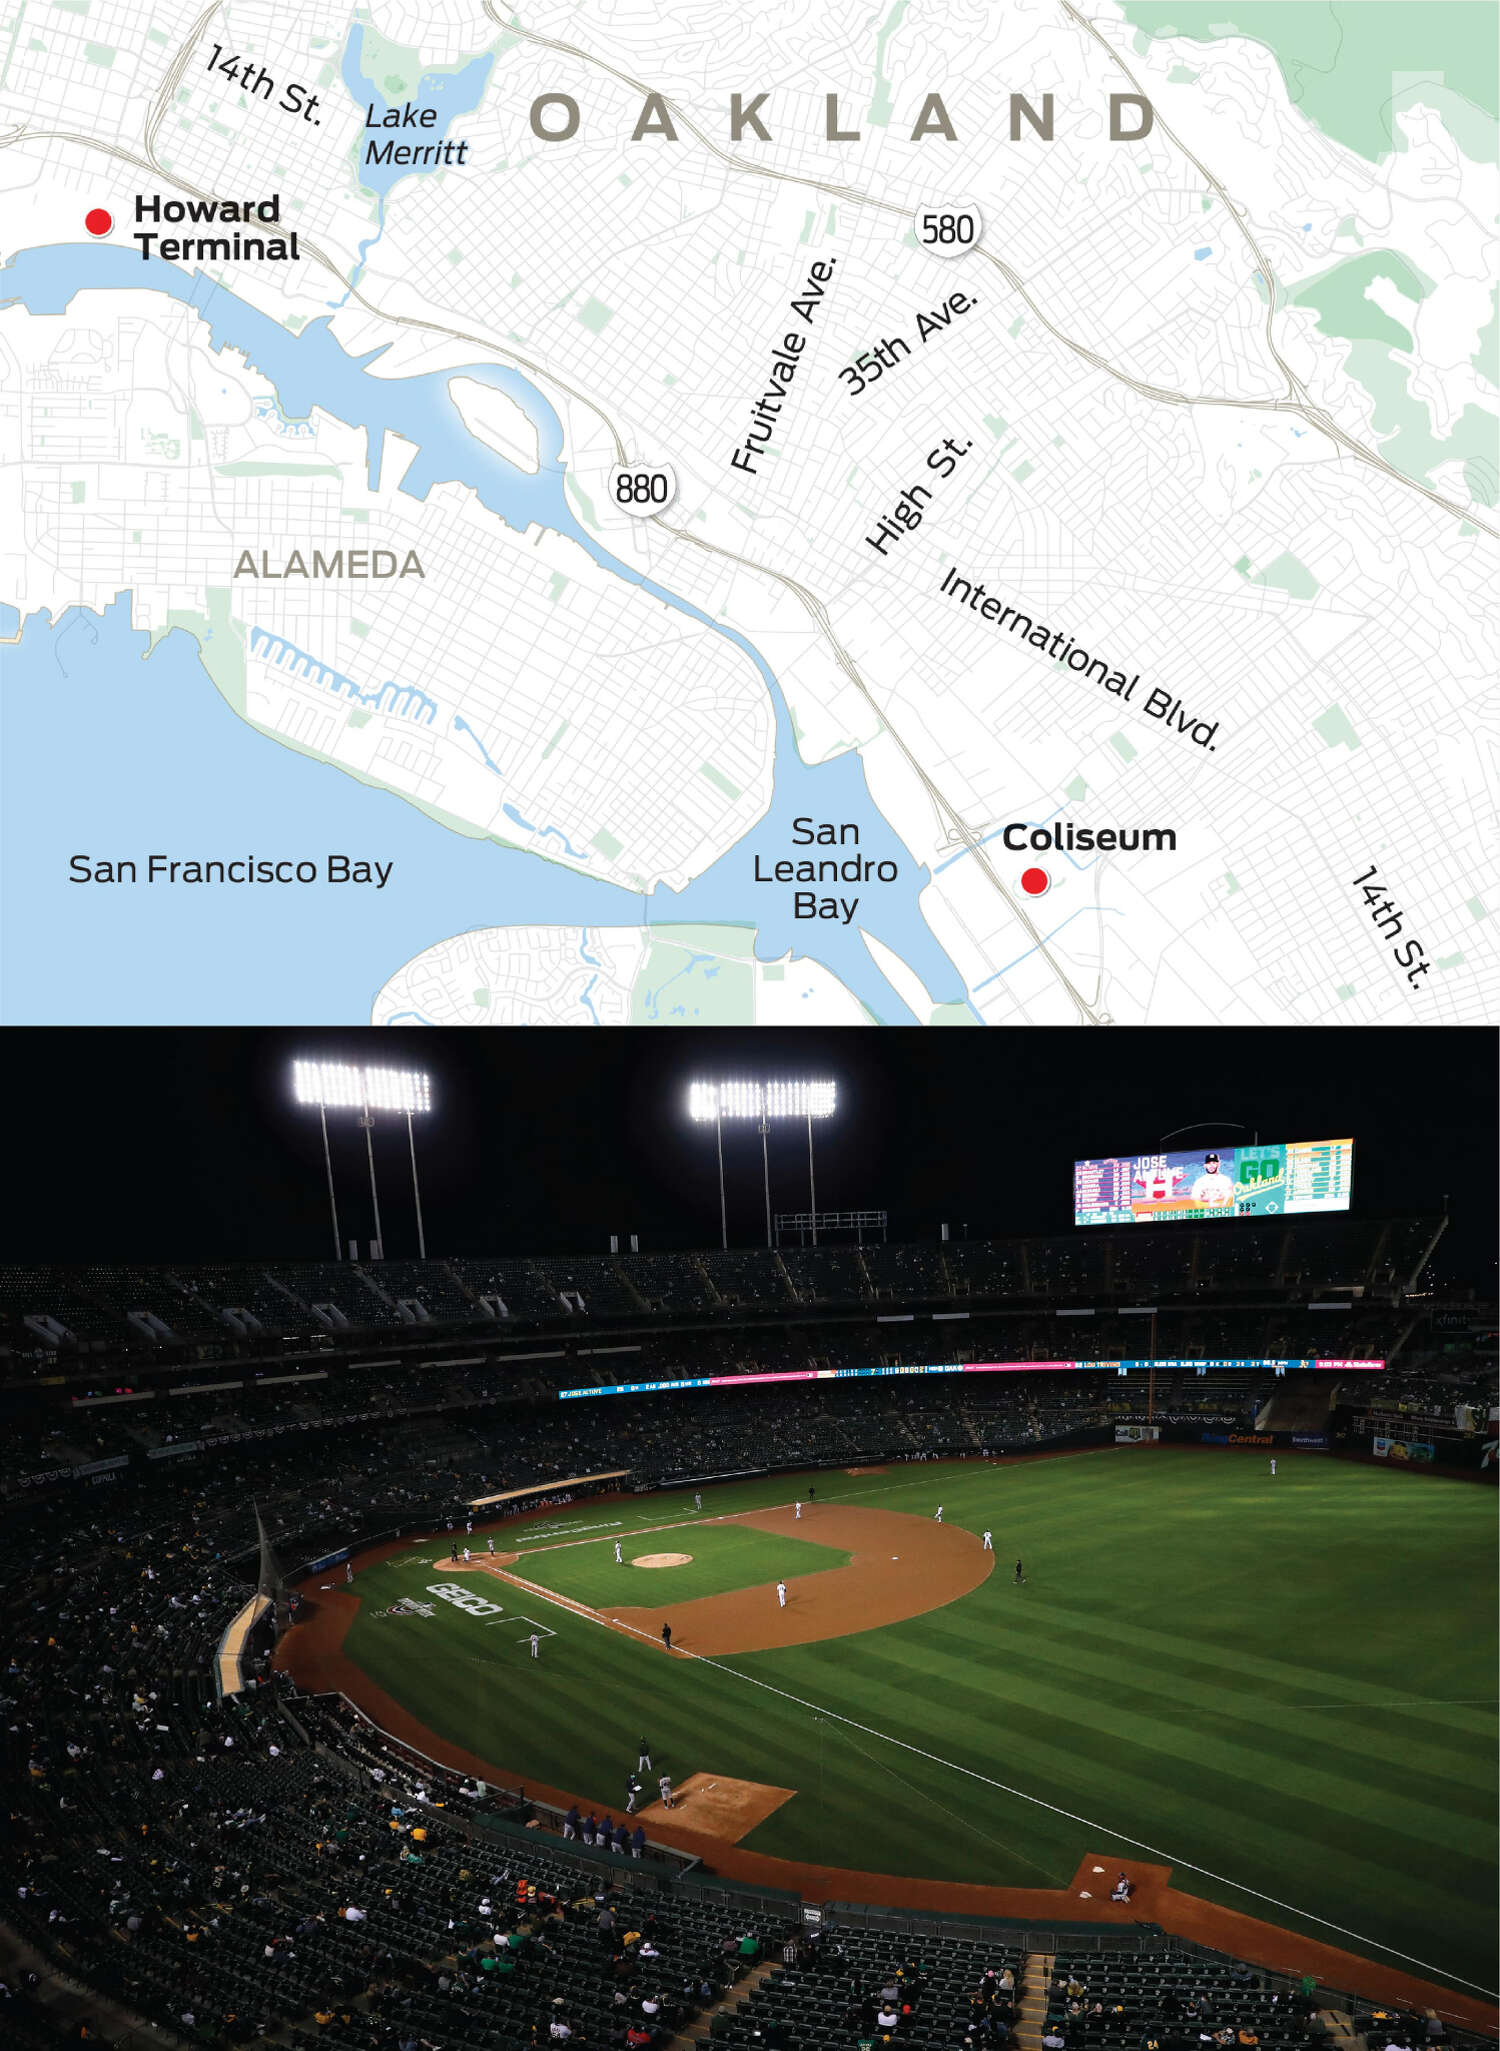 A map depicts the locations of the Oakland Coliseum and Howard Terminal above a photo of the Coliseum.